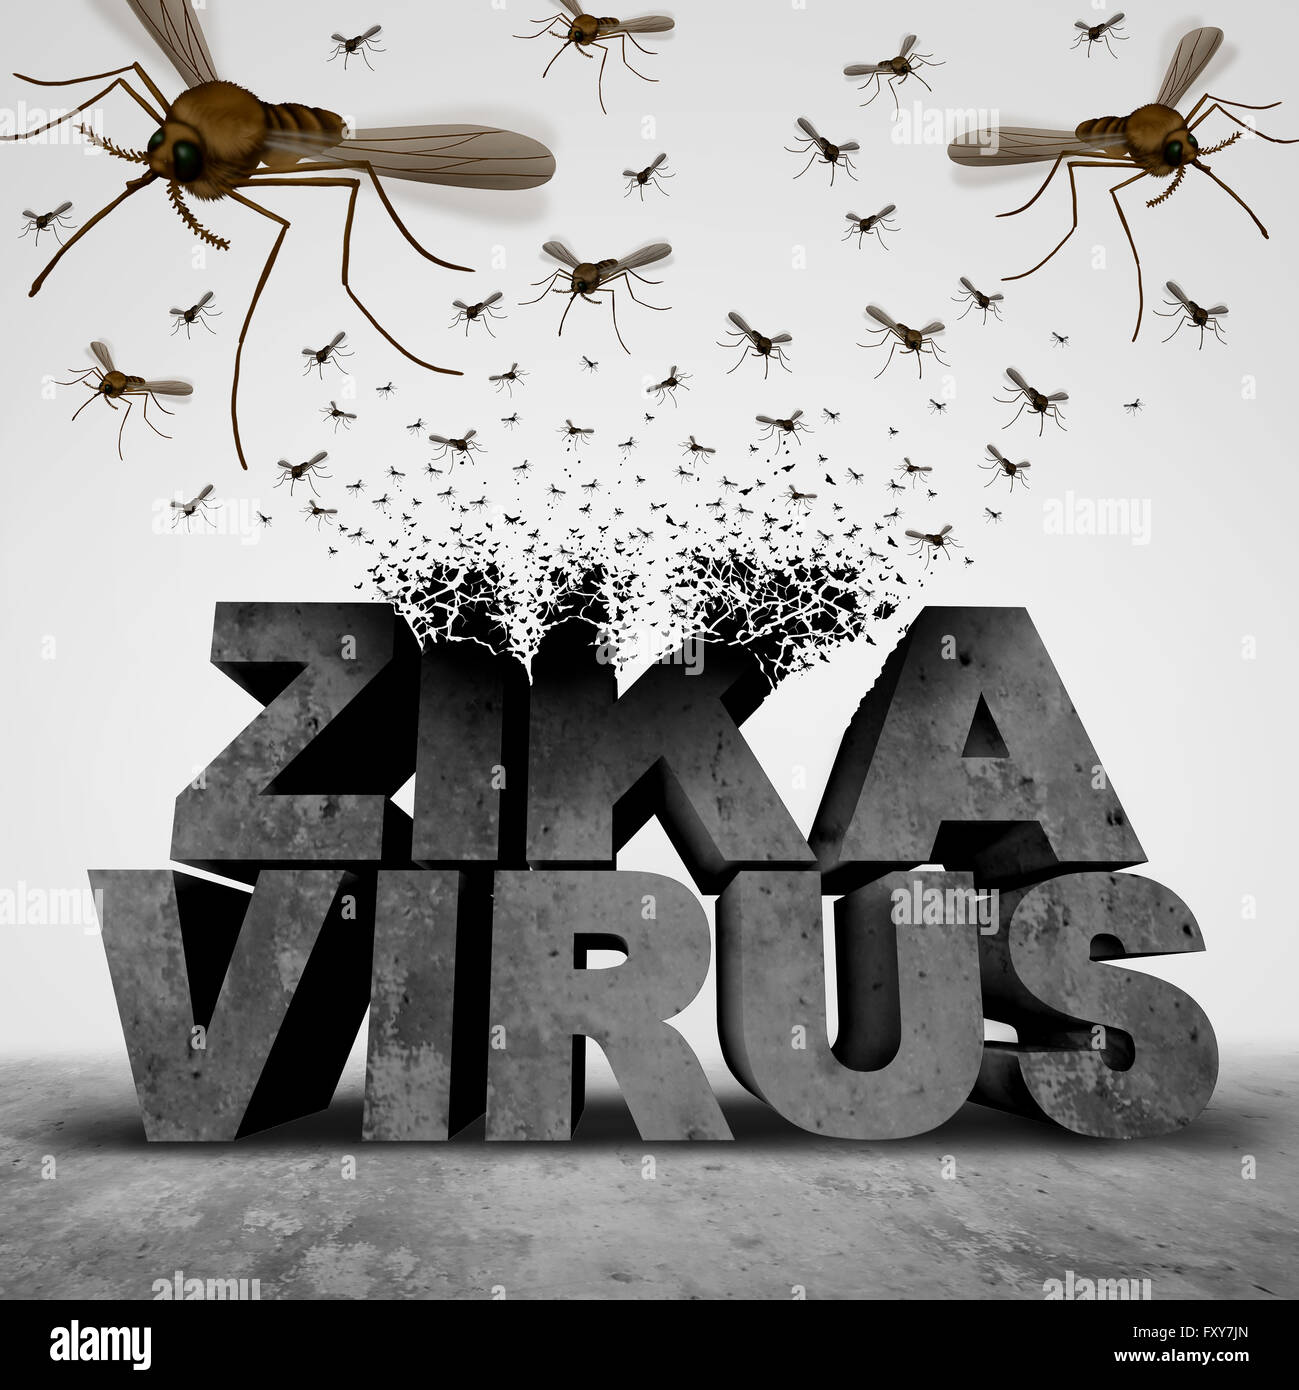 Zika virus danger concept as a 3D illustration text transforming to a group of swarming infectious mosquitos spreading - Stock Image